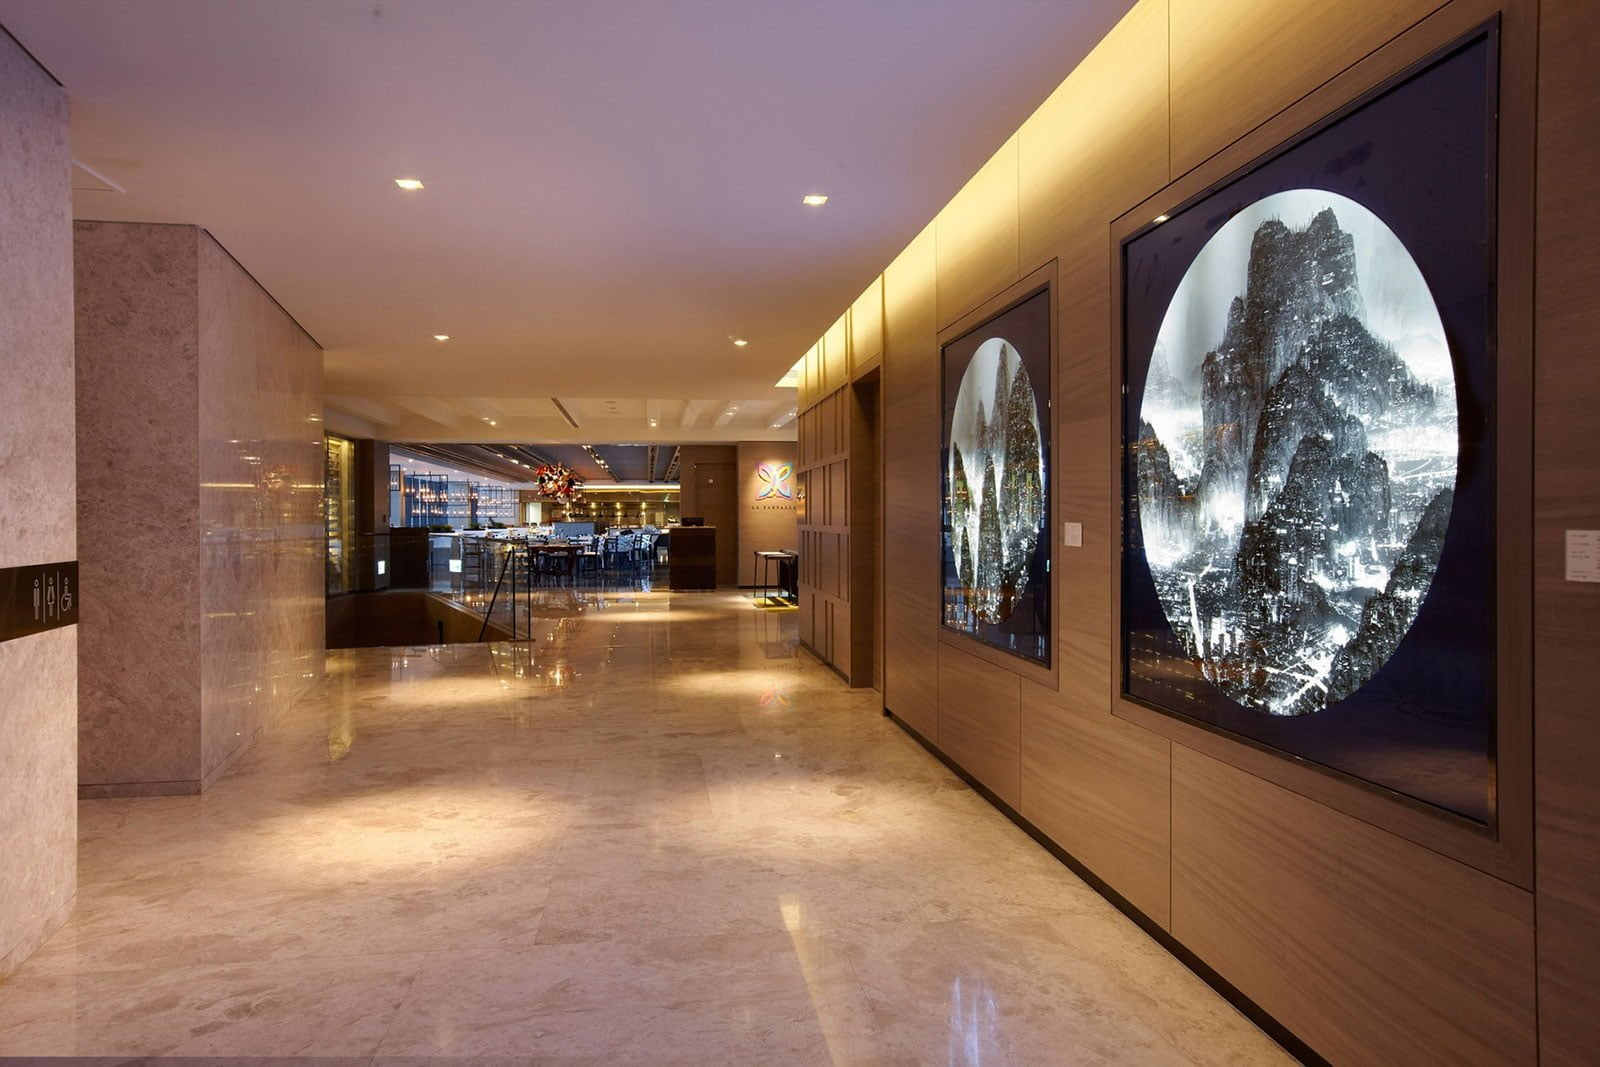 """Moonlight"" by Yang Yongliang, at the hotel's lobby. Photo: Humble House Taipei"